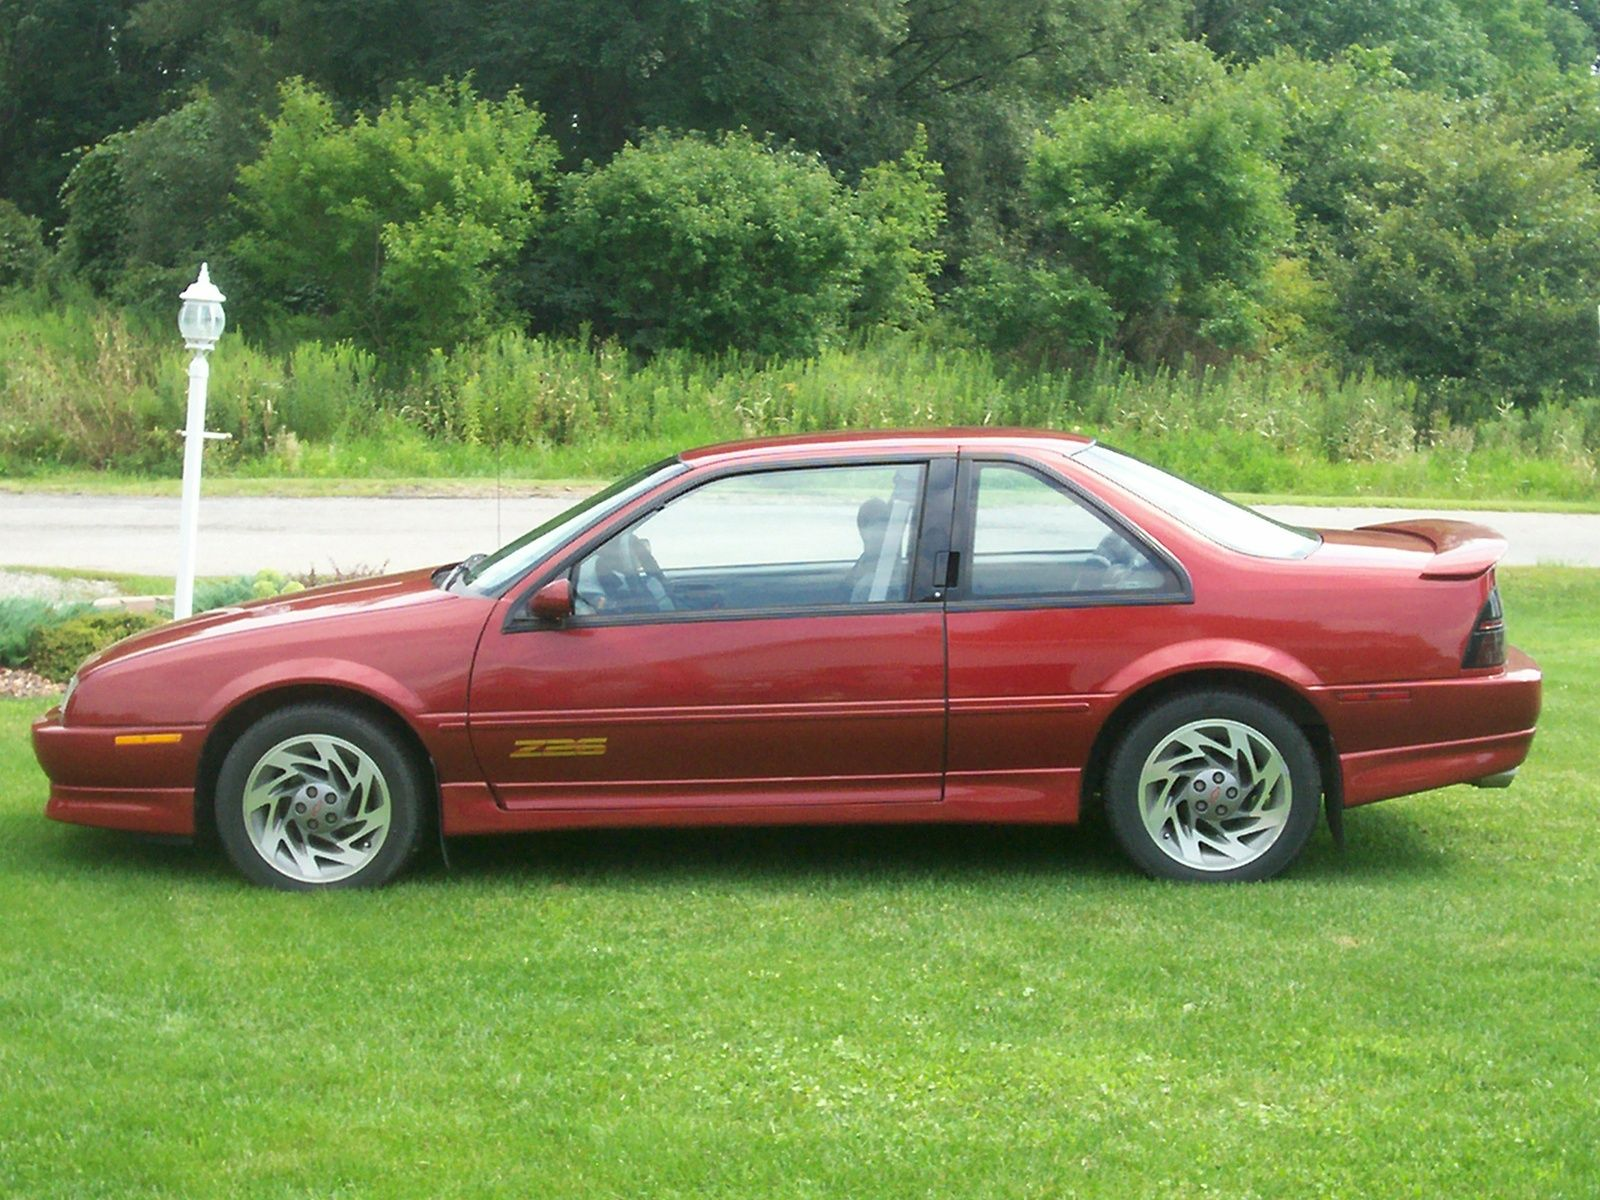 medium resolution of 1996 chevrolet beretta 2 dr z26 coupe